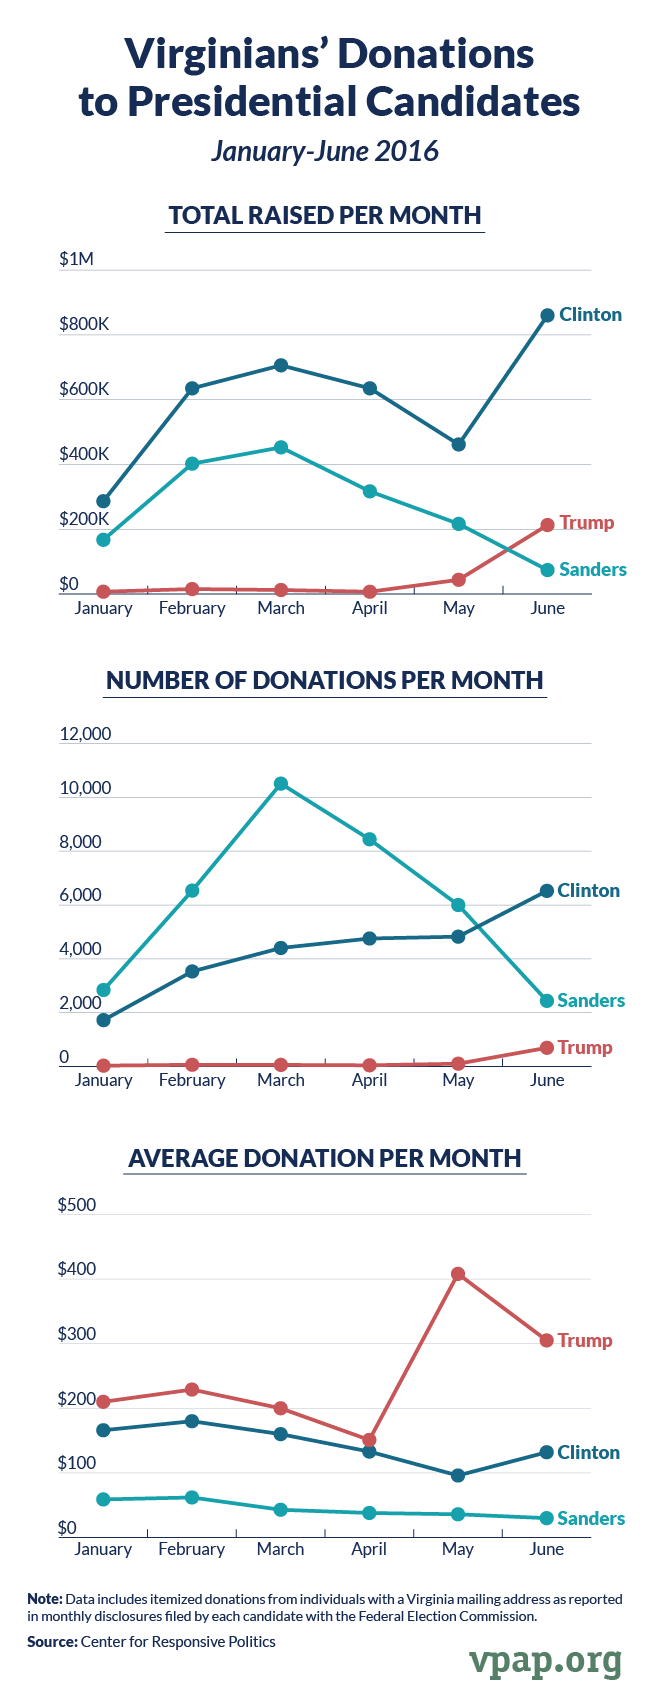 Virginians' Donations to Presidential Candidates, January-June